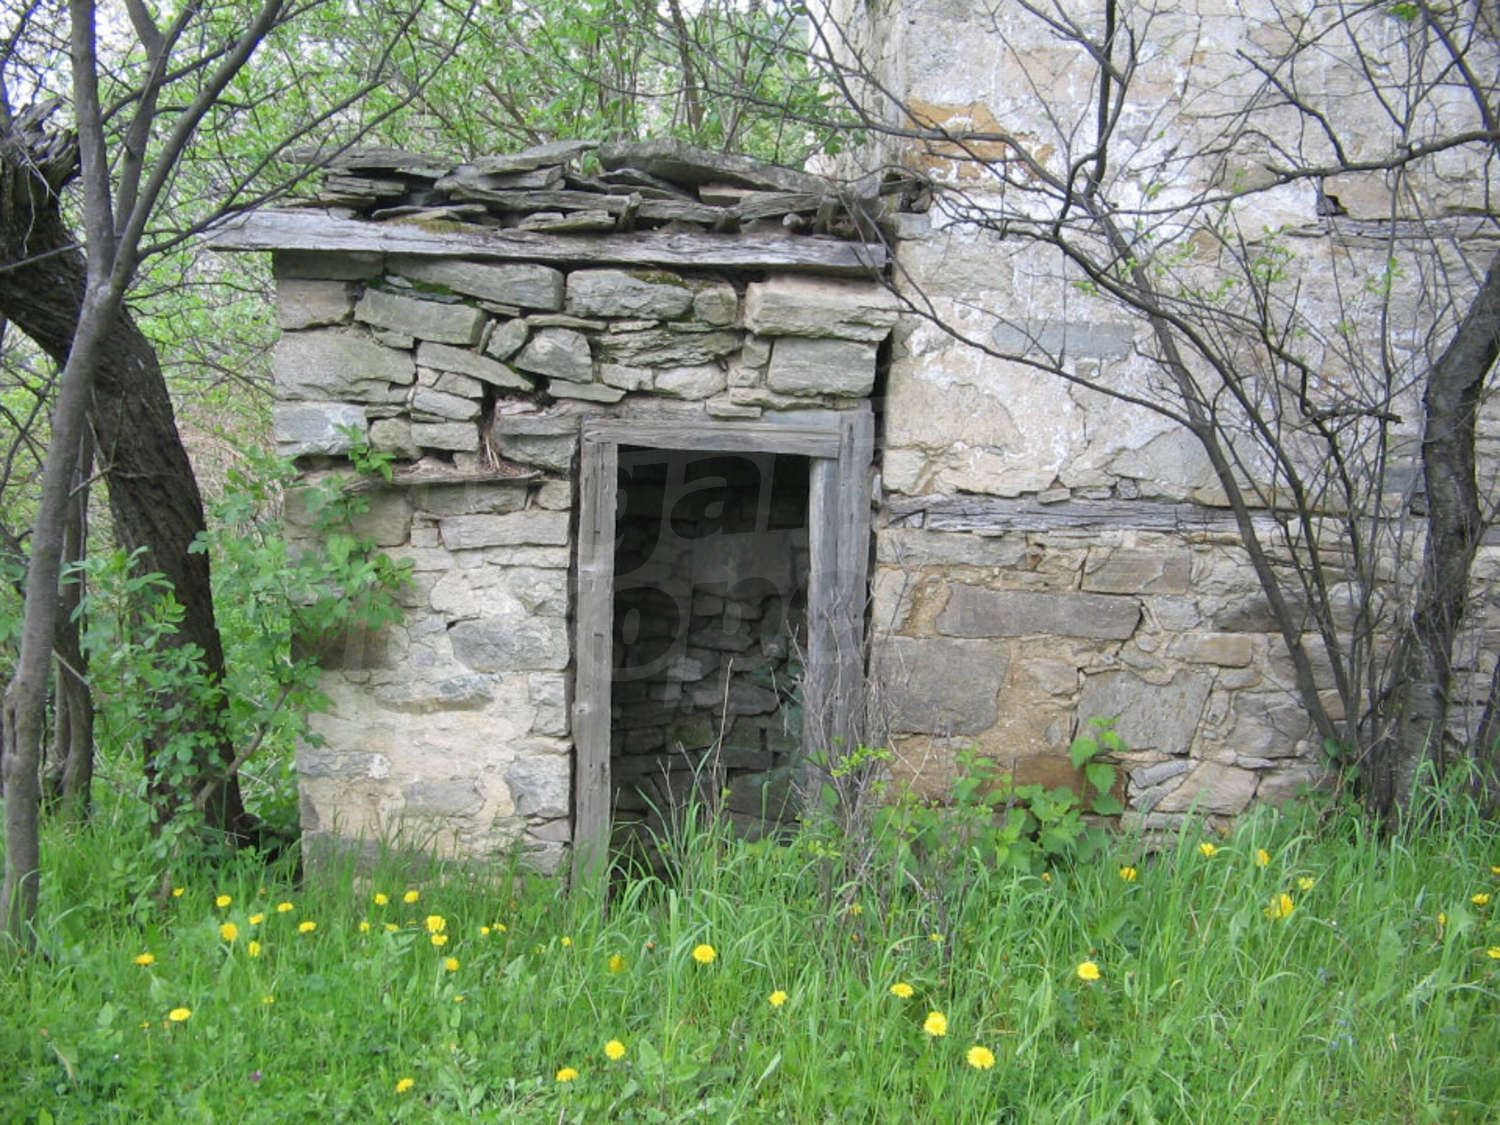 House for sale near kardjali bulgaria two houses in need for Large garden stones for sale